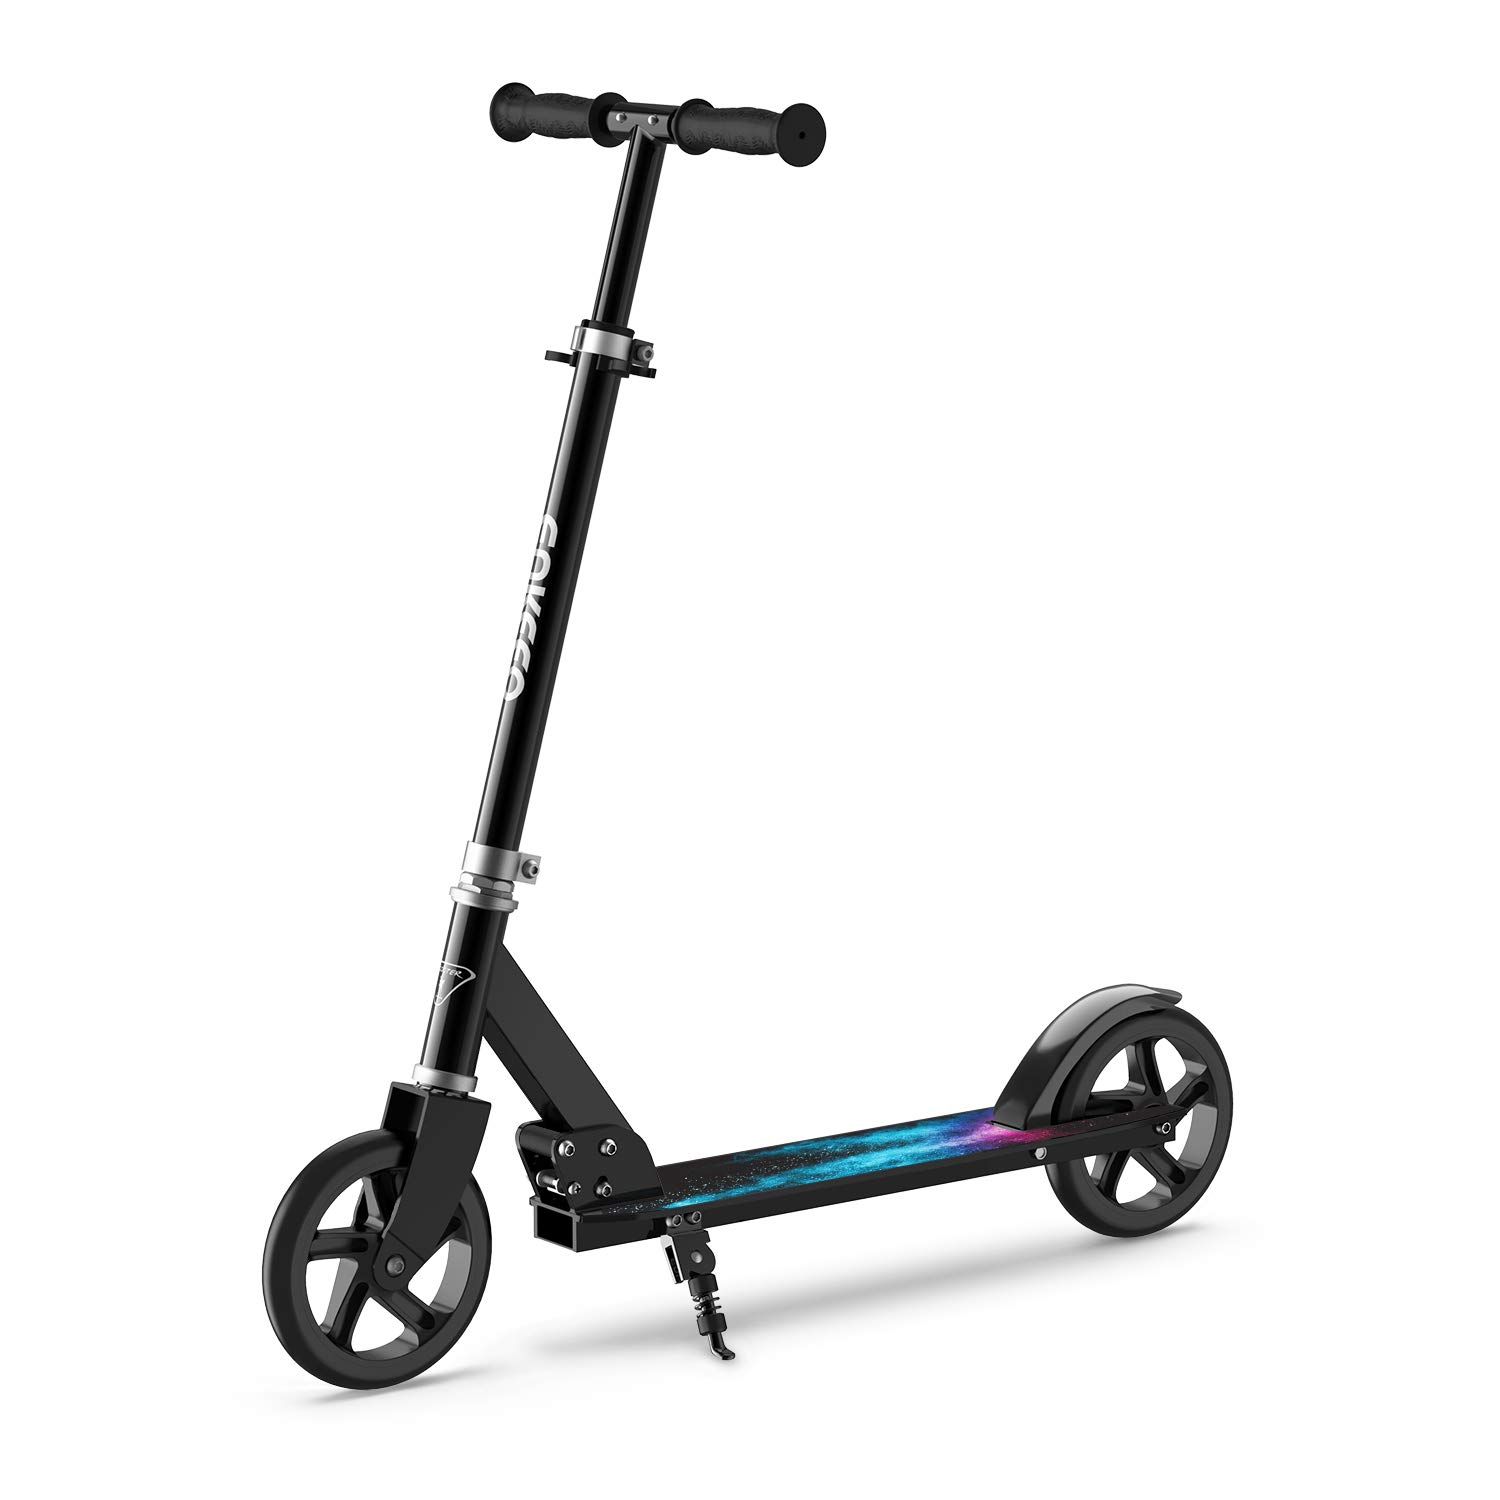 ENKEEO Kick Scooter with 220 lbs Capacity, Height Adjustable Handlebar and Oversized Wheels, Smart Brake System, Foldable Commuter Scooter for Kids, Adult (Black) by ENKEEO